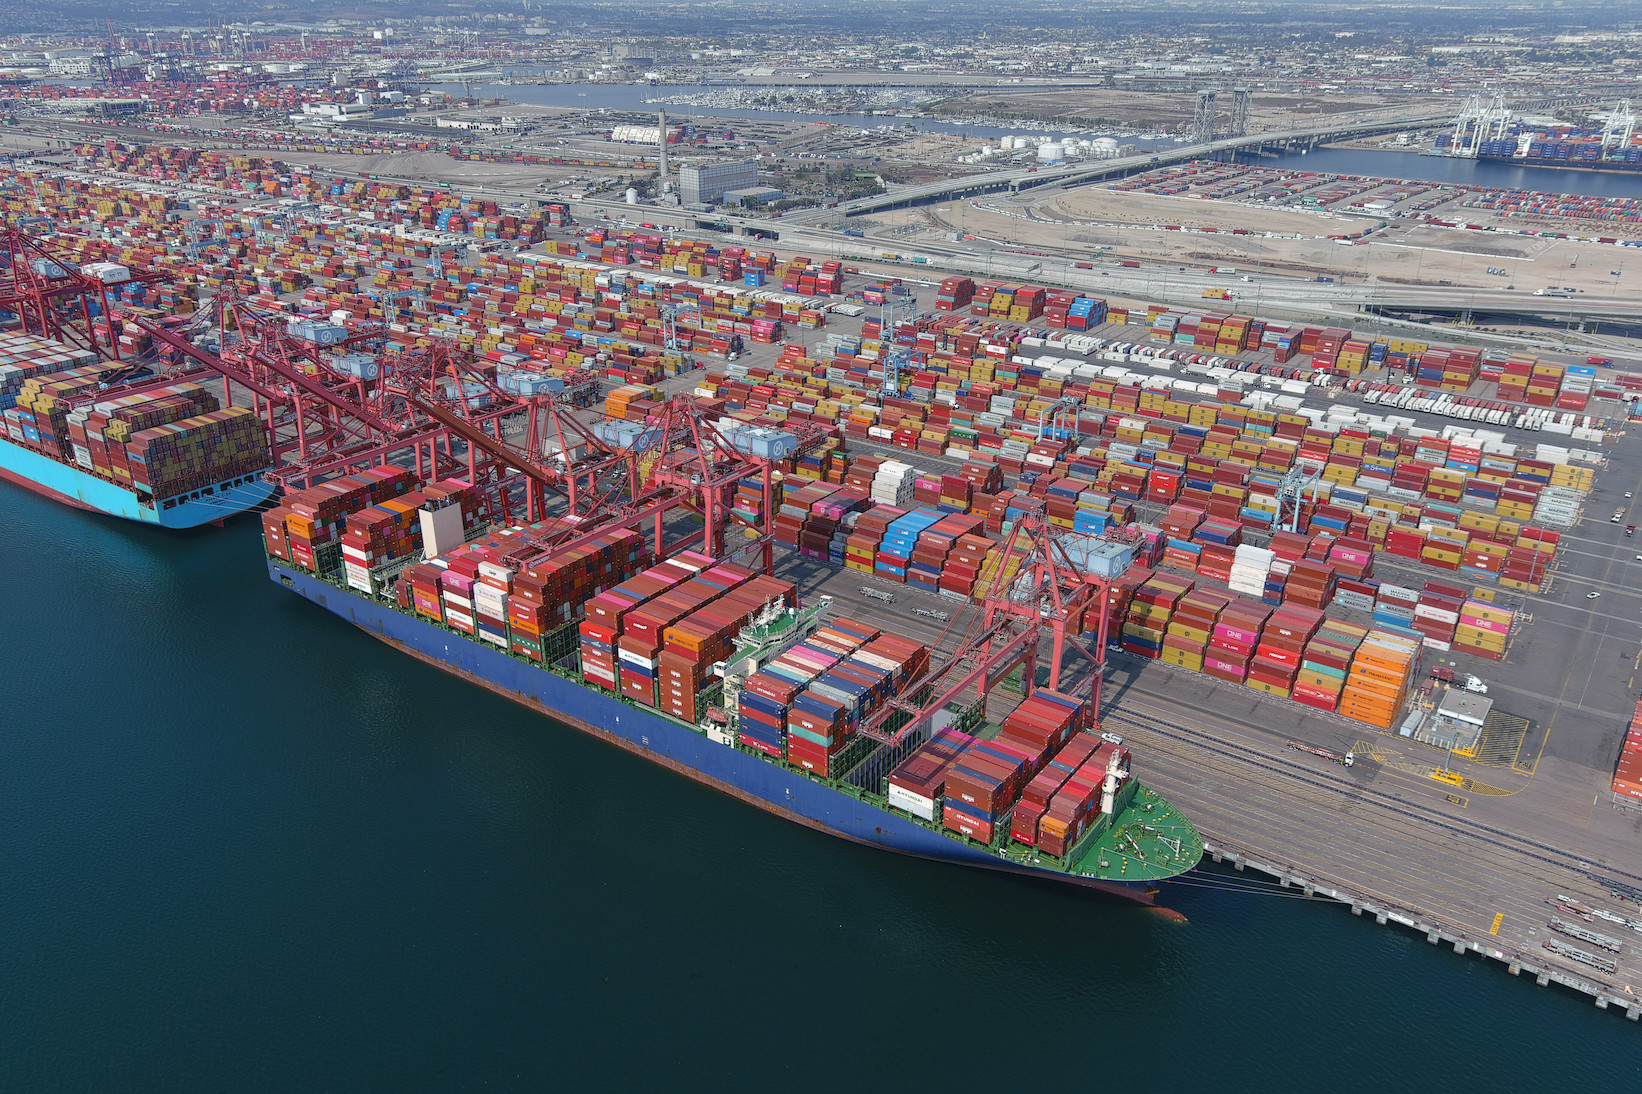 """Cargo container vessels ships are backlogged at the Port of Long Beach, where cargo """"call sizes"""" have increased 73 percent since the first half of 2019."""